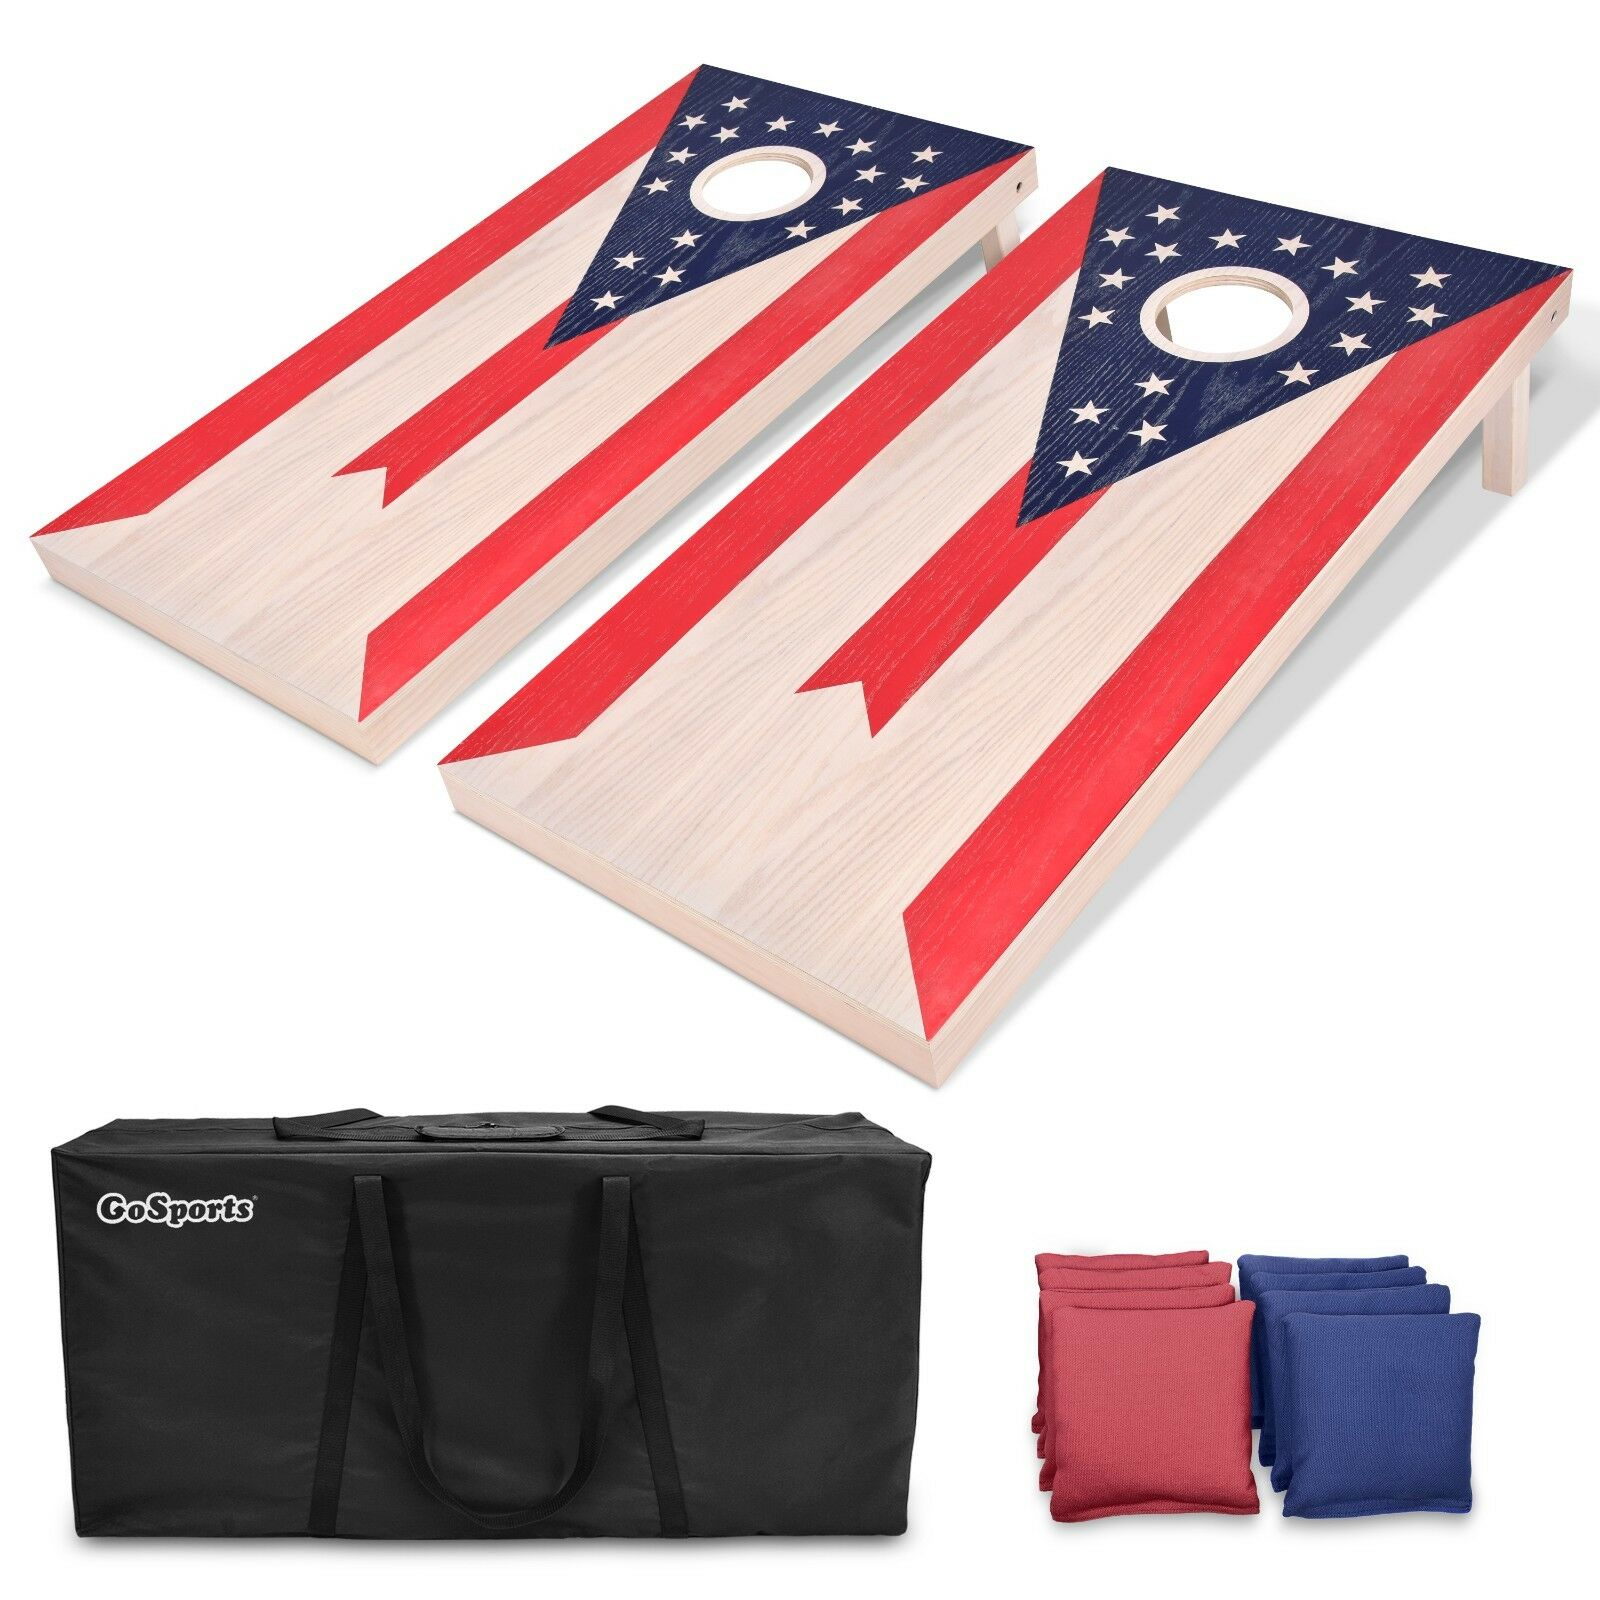 GoSports Ohio Flag Regulation Size 4'x2' Solid Wood Cornhole Bags Toss Game Set